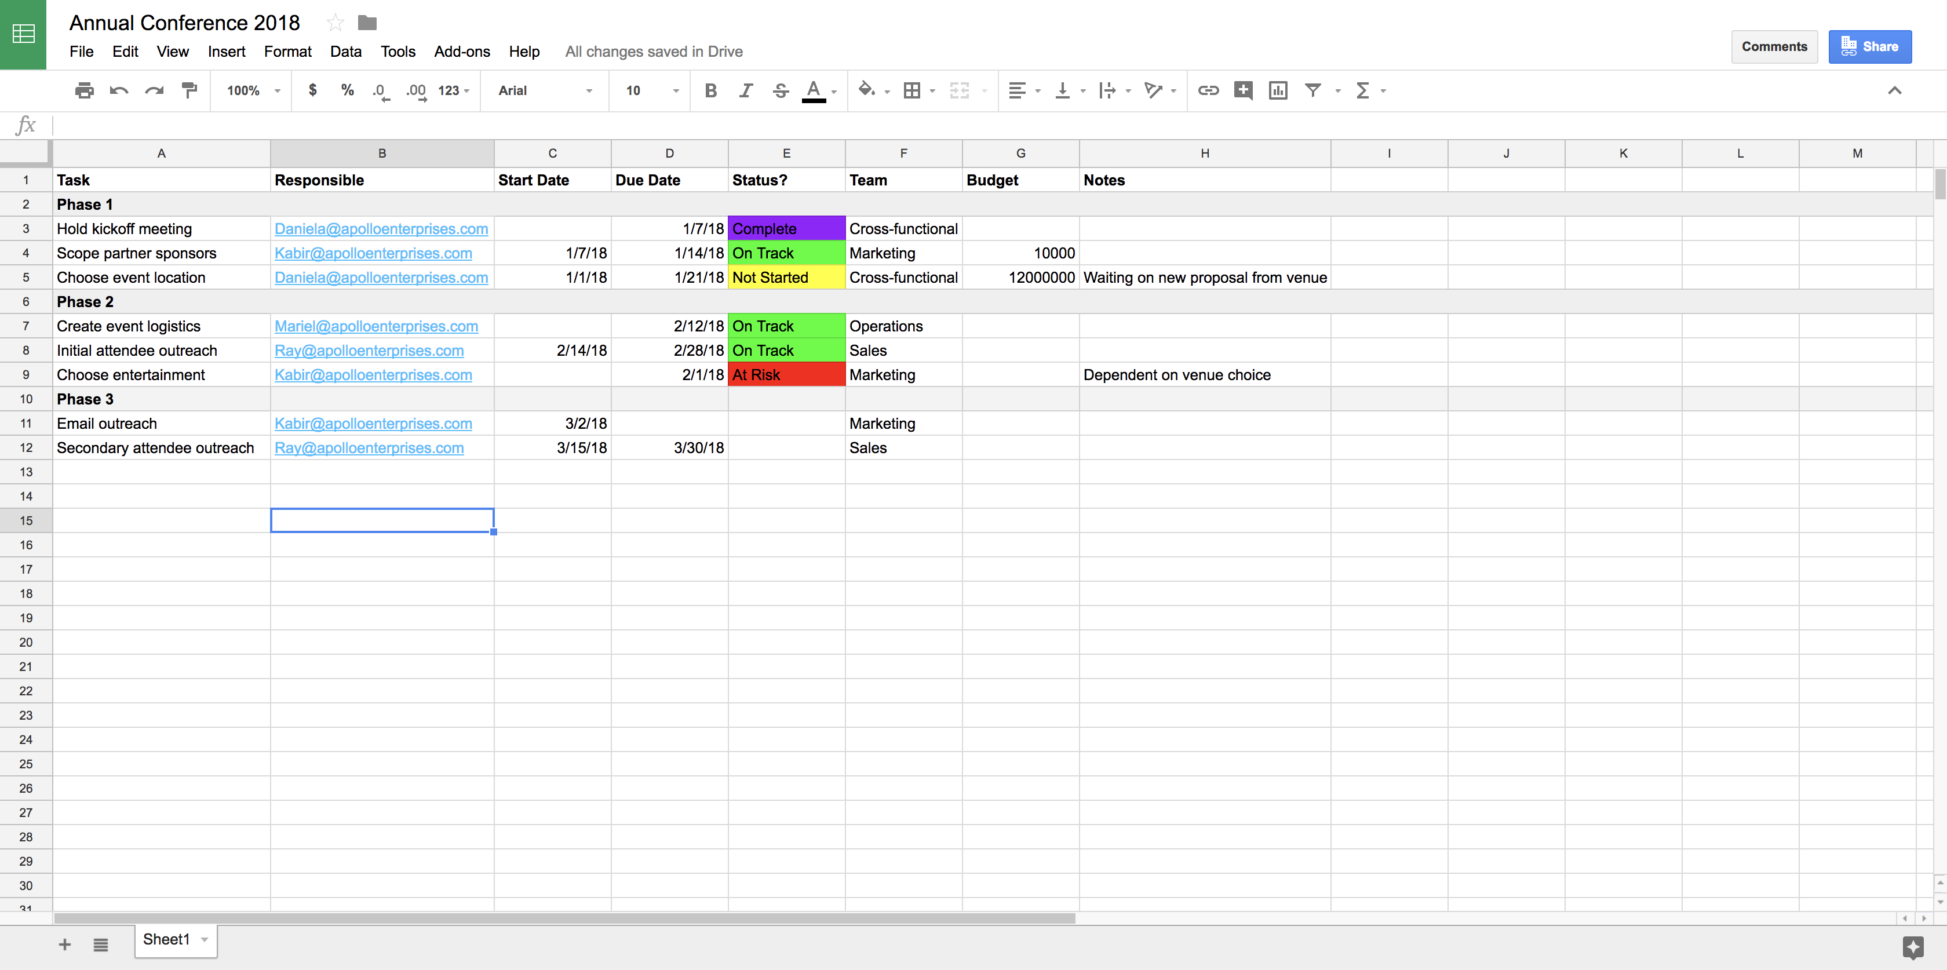 jobs that use excel spreadsheets jobs that use spreadsheets 3 jobs that use spreadsheets list of jobs that use spreadsheets  Jobs That Use Spreadsheets Intended For New: Import Spreadsheets And Csv Files To Asana Projects Jobs That Use Spreadsheets Google Spreadshee